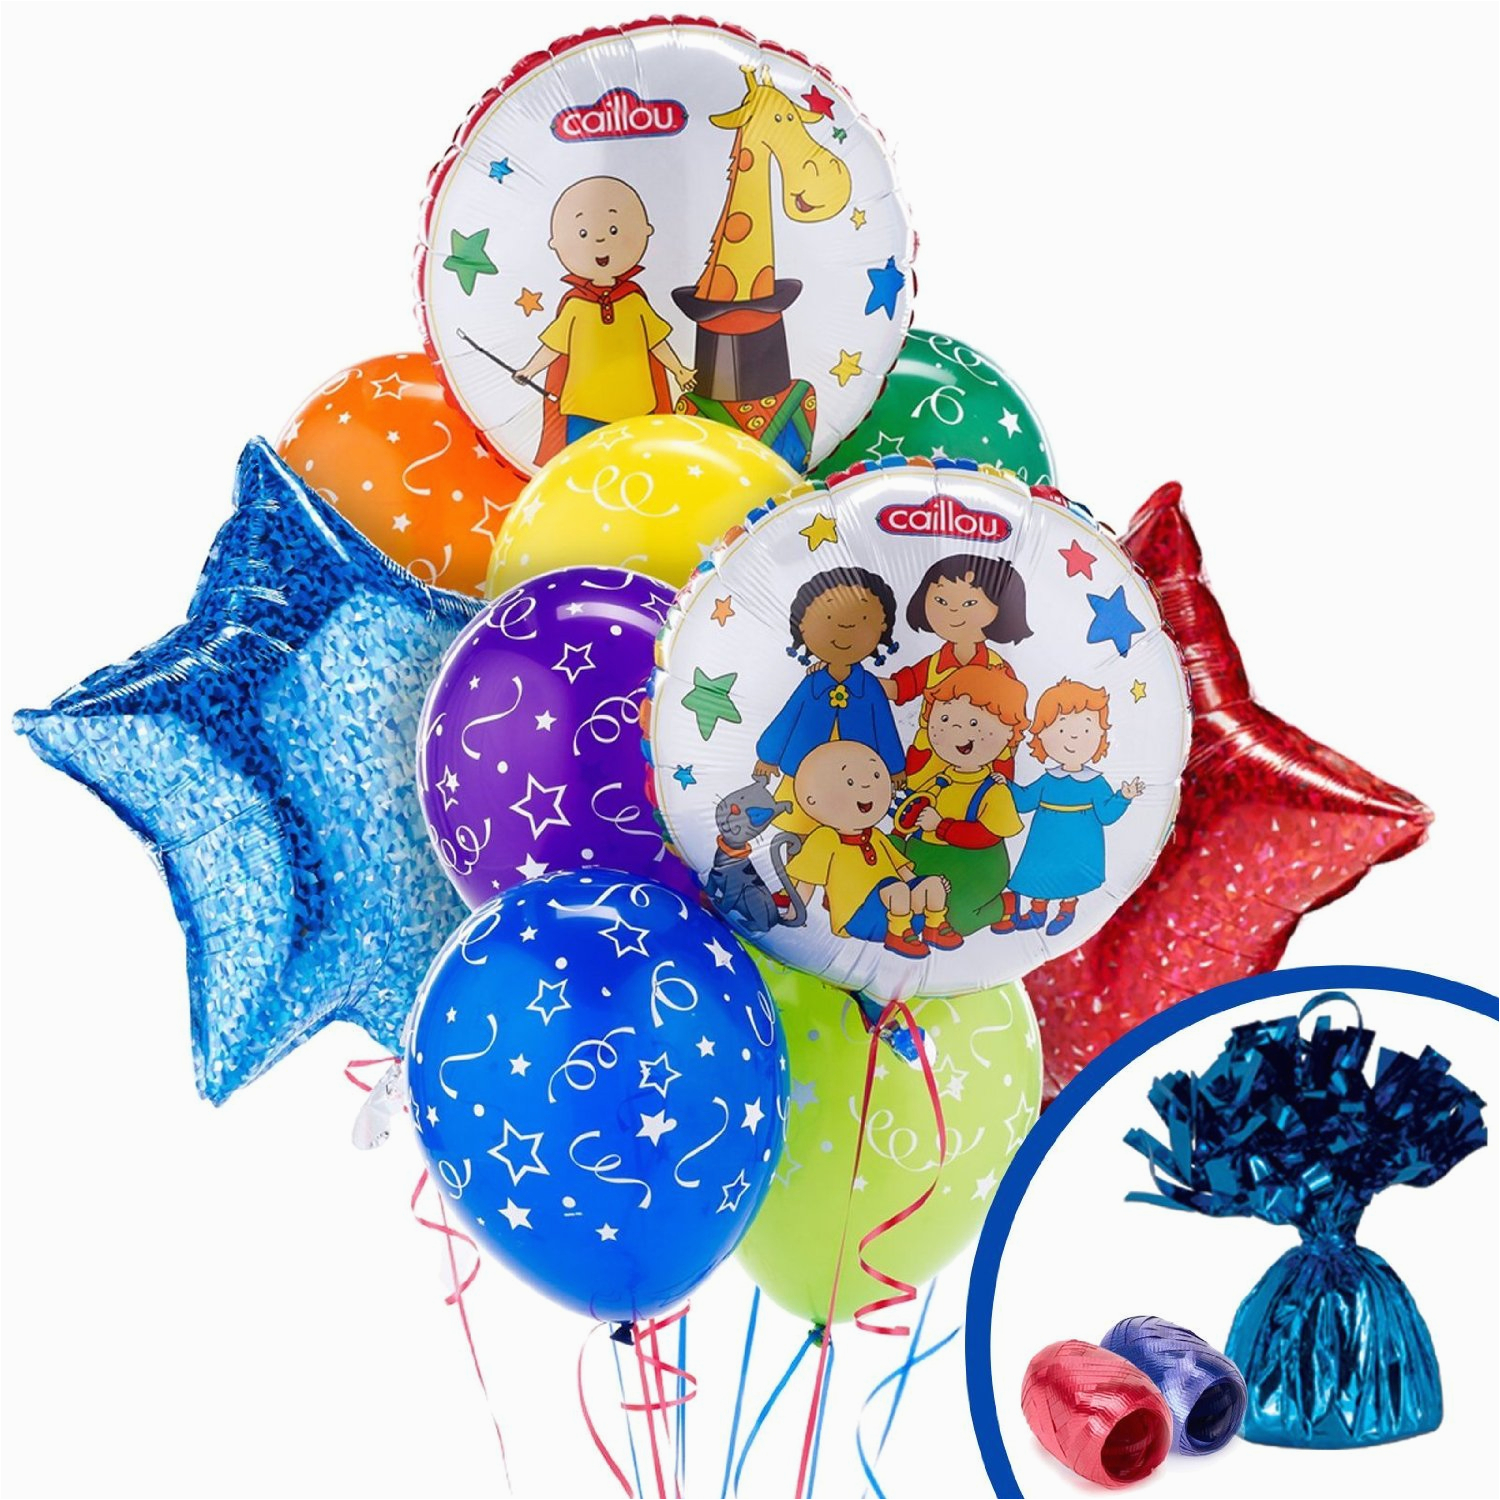 how to have caillou birthday party